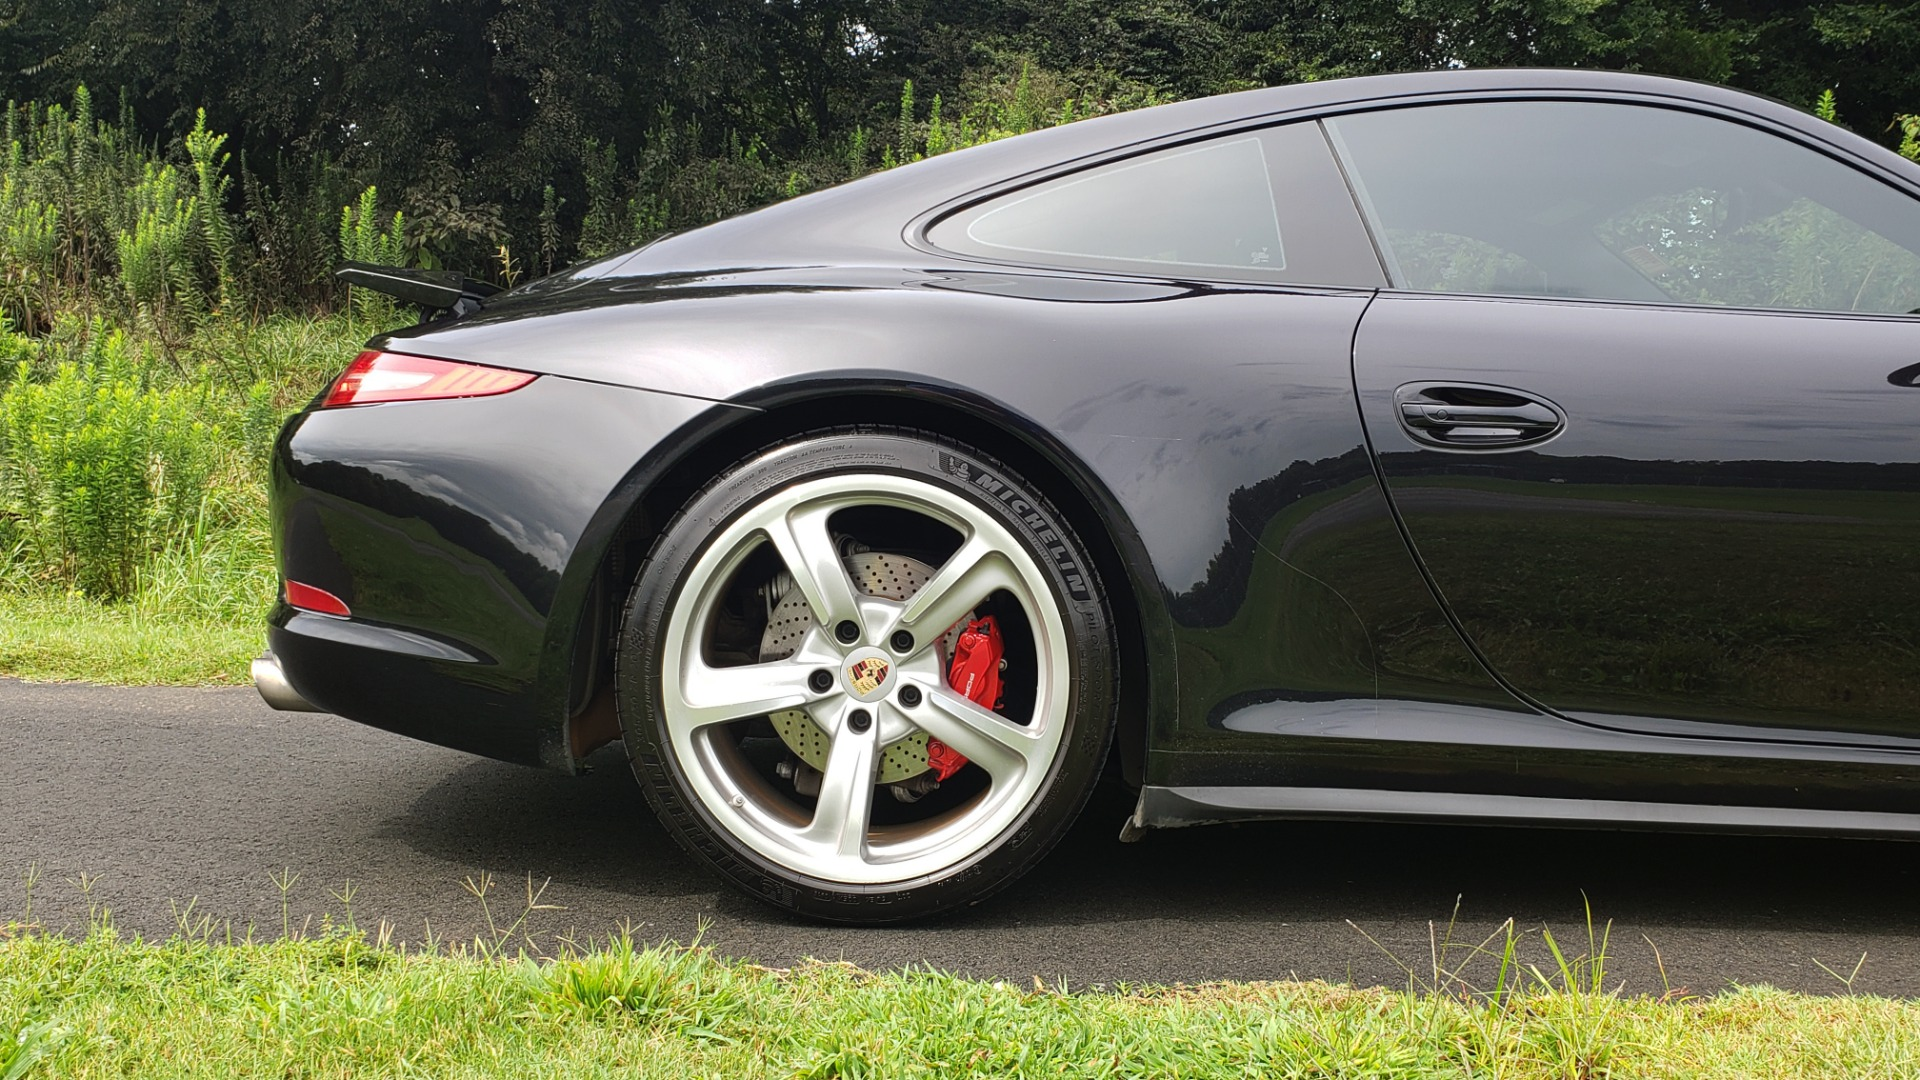 Used 2014 Porsche 911 CARRERA 4S / AWD / 3.8L / PDK / CHRONO / NAV / BOSE / SUNROOF for sale Sold at Formula Imports in Charlotte NC 28227 65